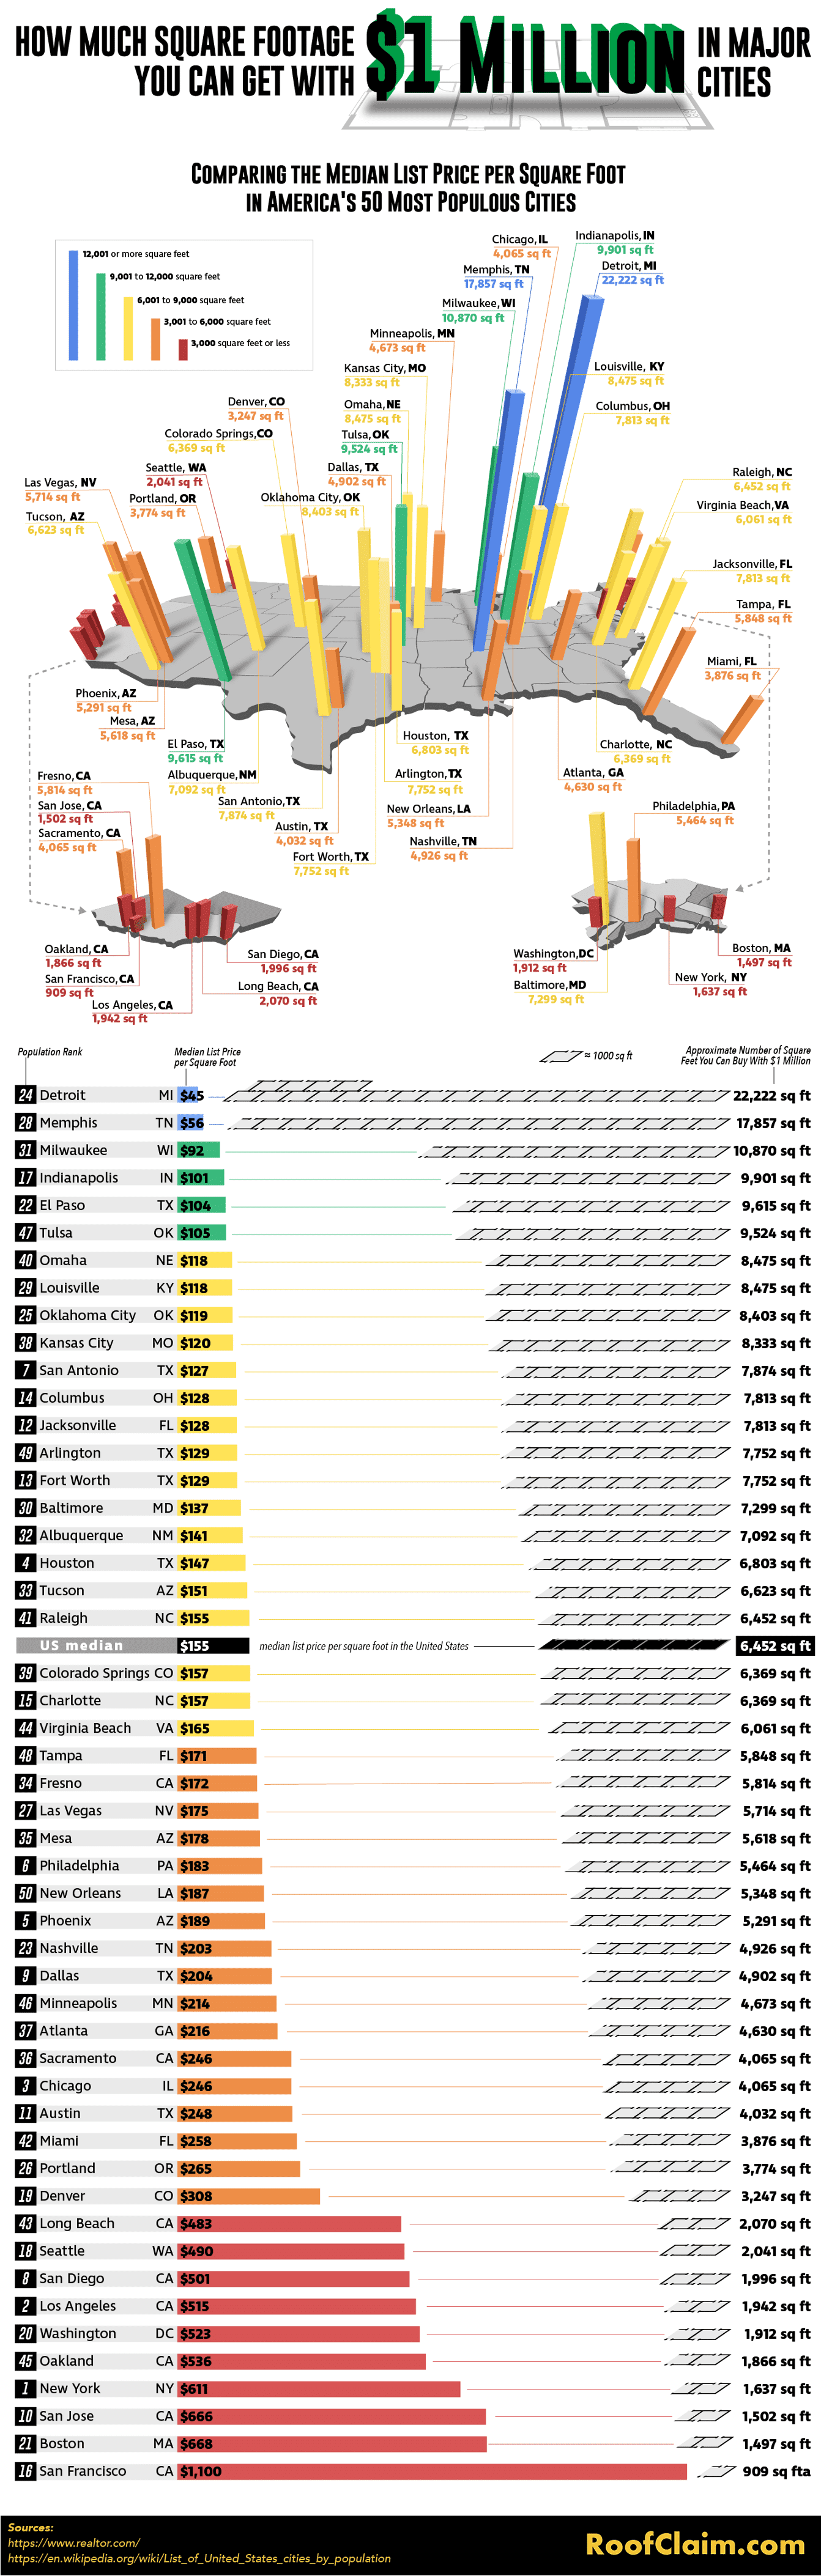 How Much Square Footage You Can Get for $1 Million in Major Cities #infographic